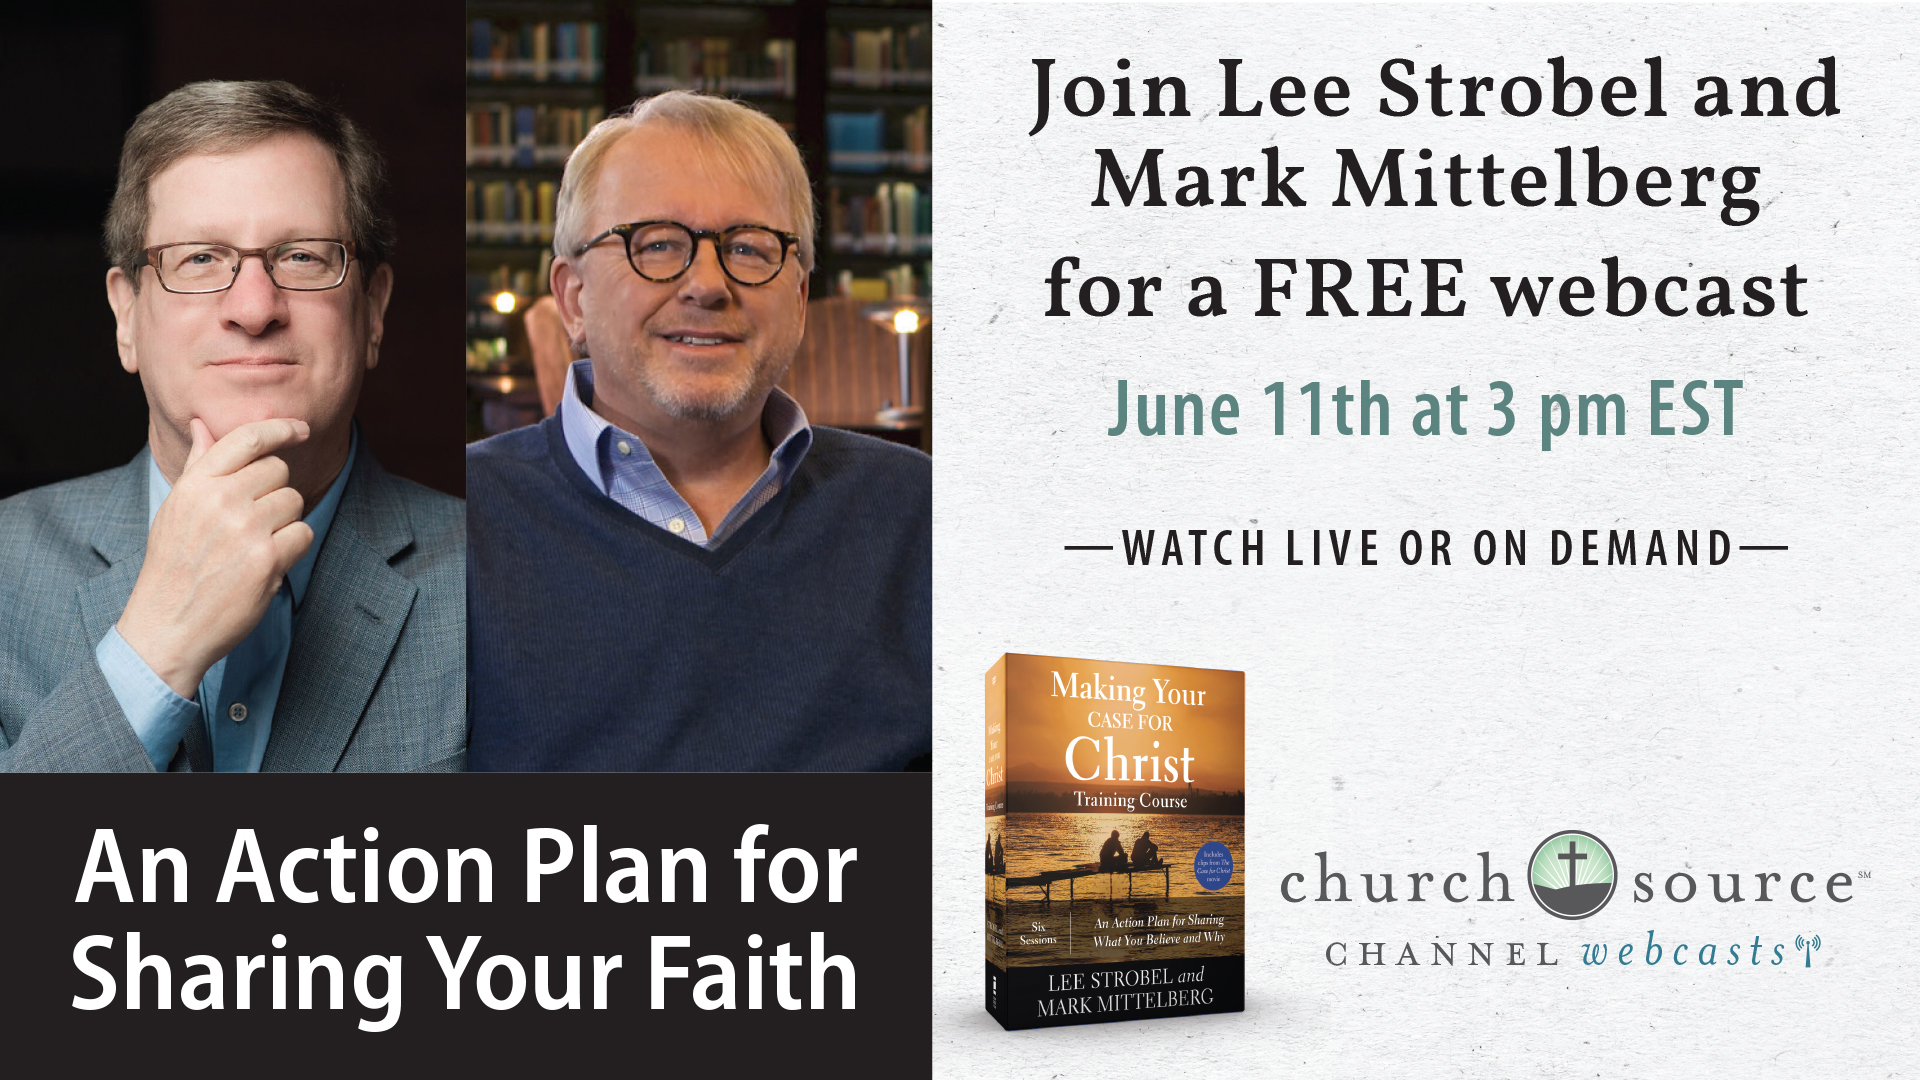 (dup) An Action Plan for Sharing What You Believe and Why - Webcast with Lee Strobel Mark Mittelberg